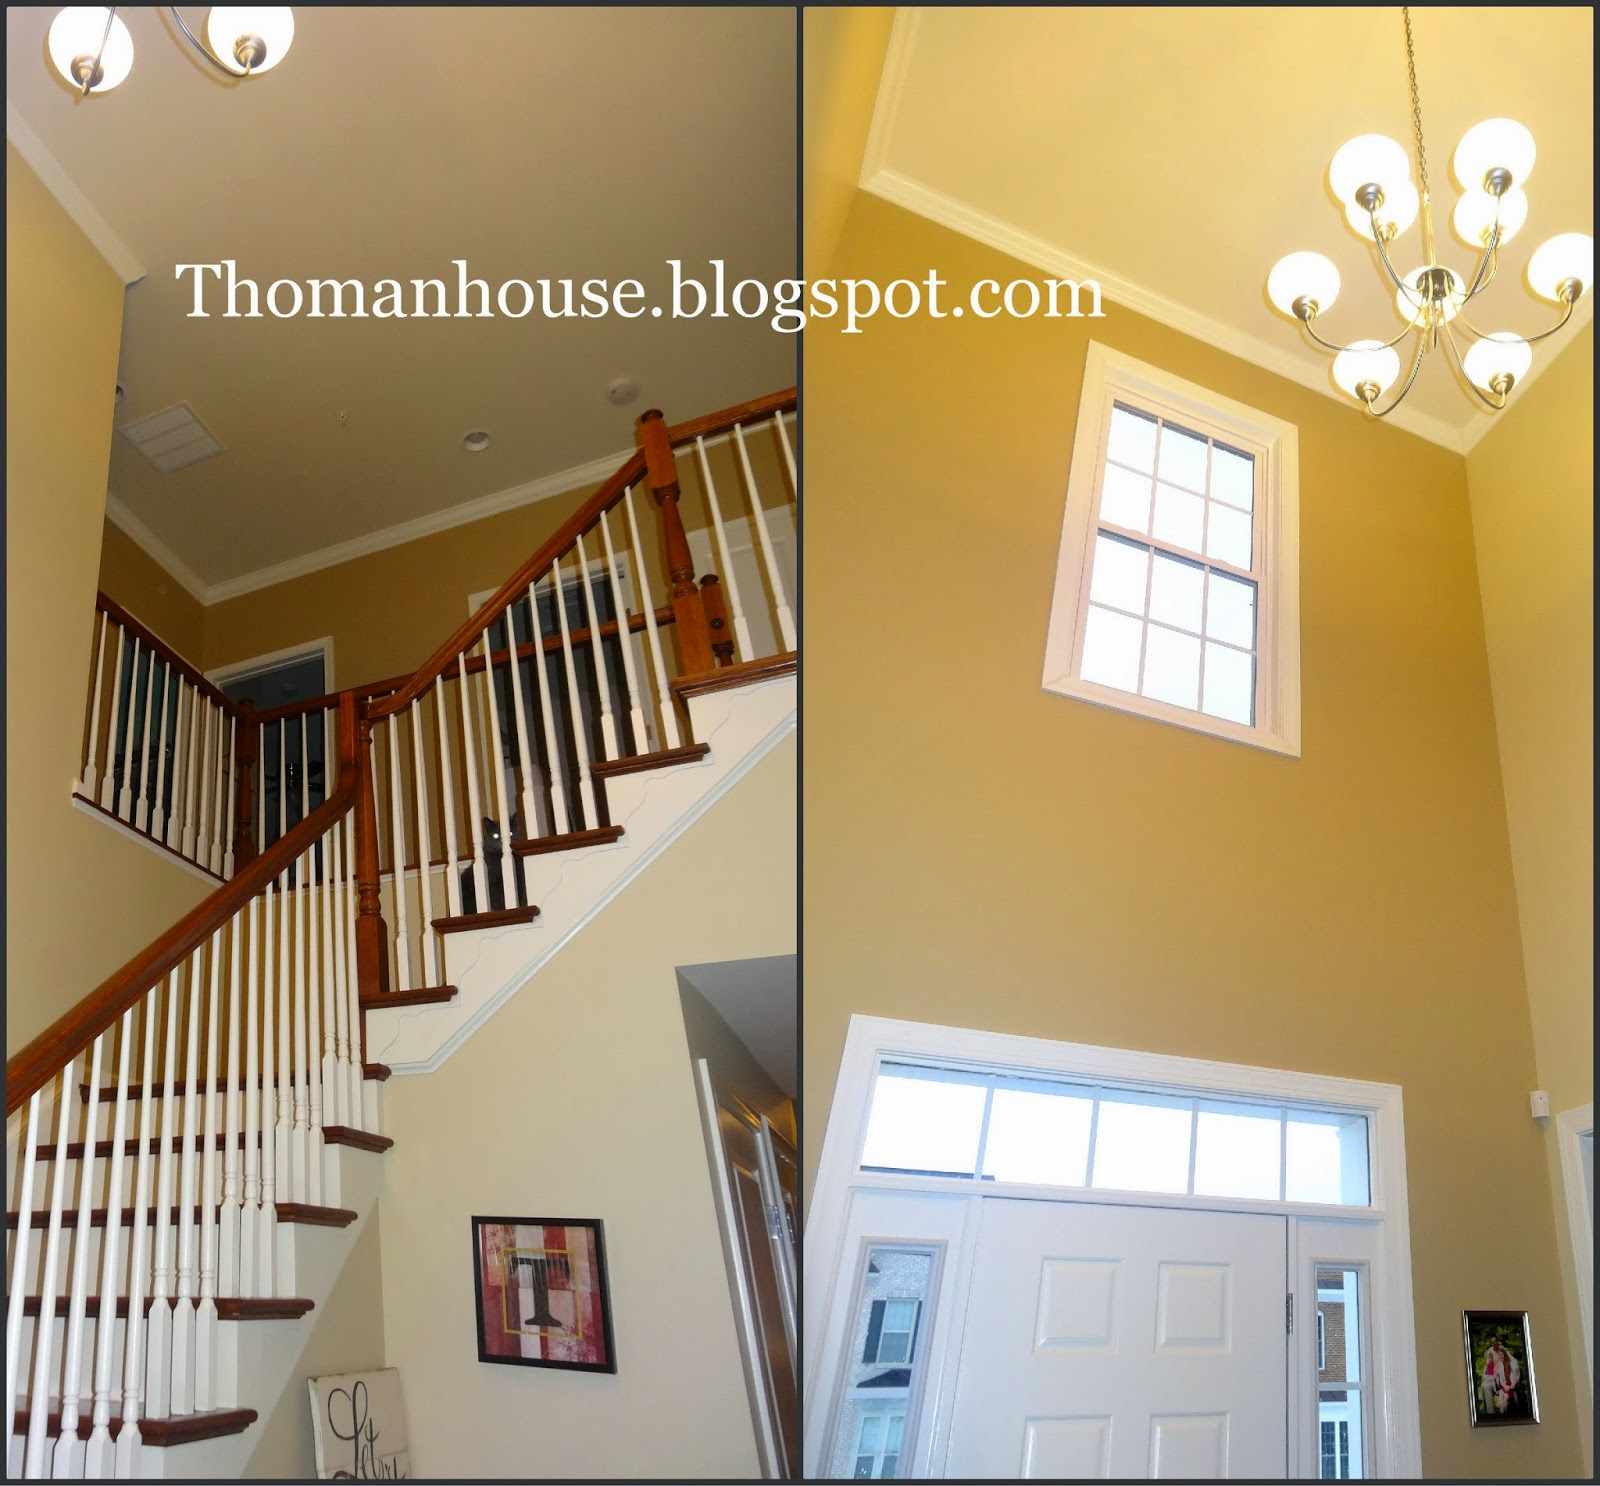 Lenox tan benjamin moore reviews - L Lenox Tan On The Upstairs Walls And Carrington Beige On The Left Wall And Lower Walls R Leno Tan Above The Front Door And Carrington Beige On The